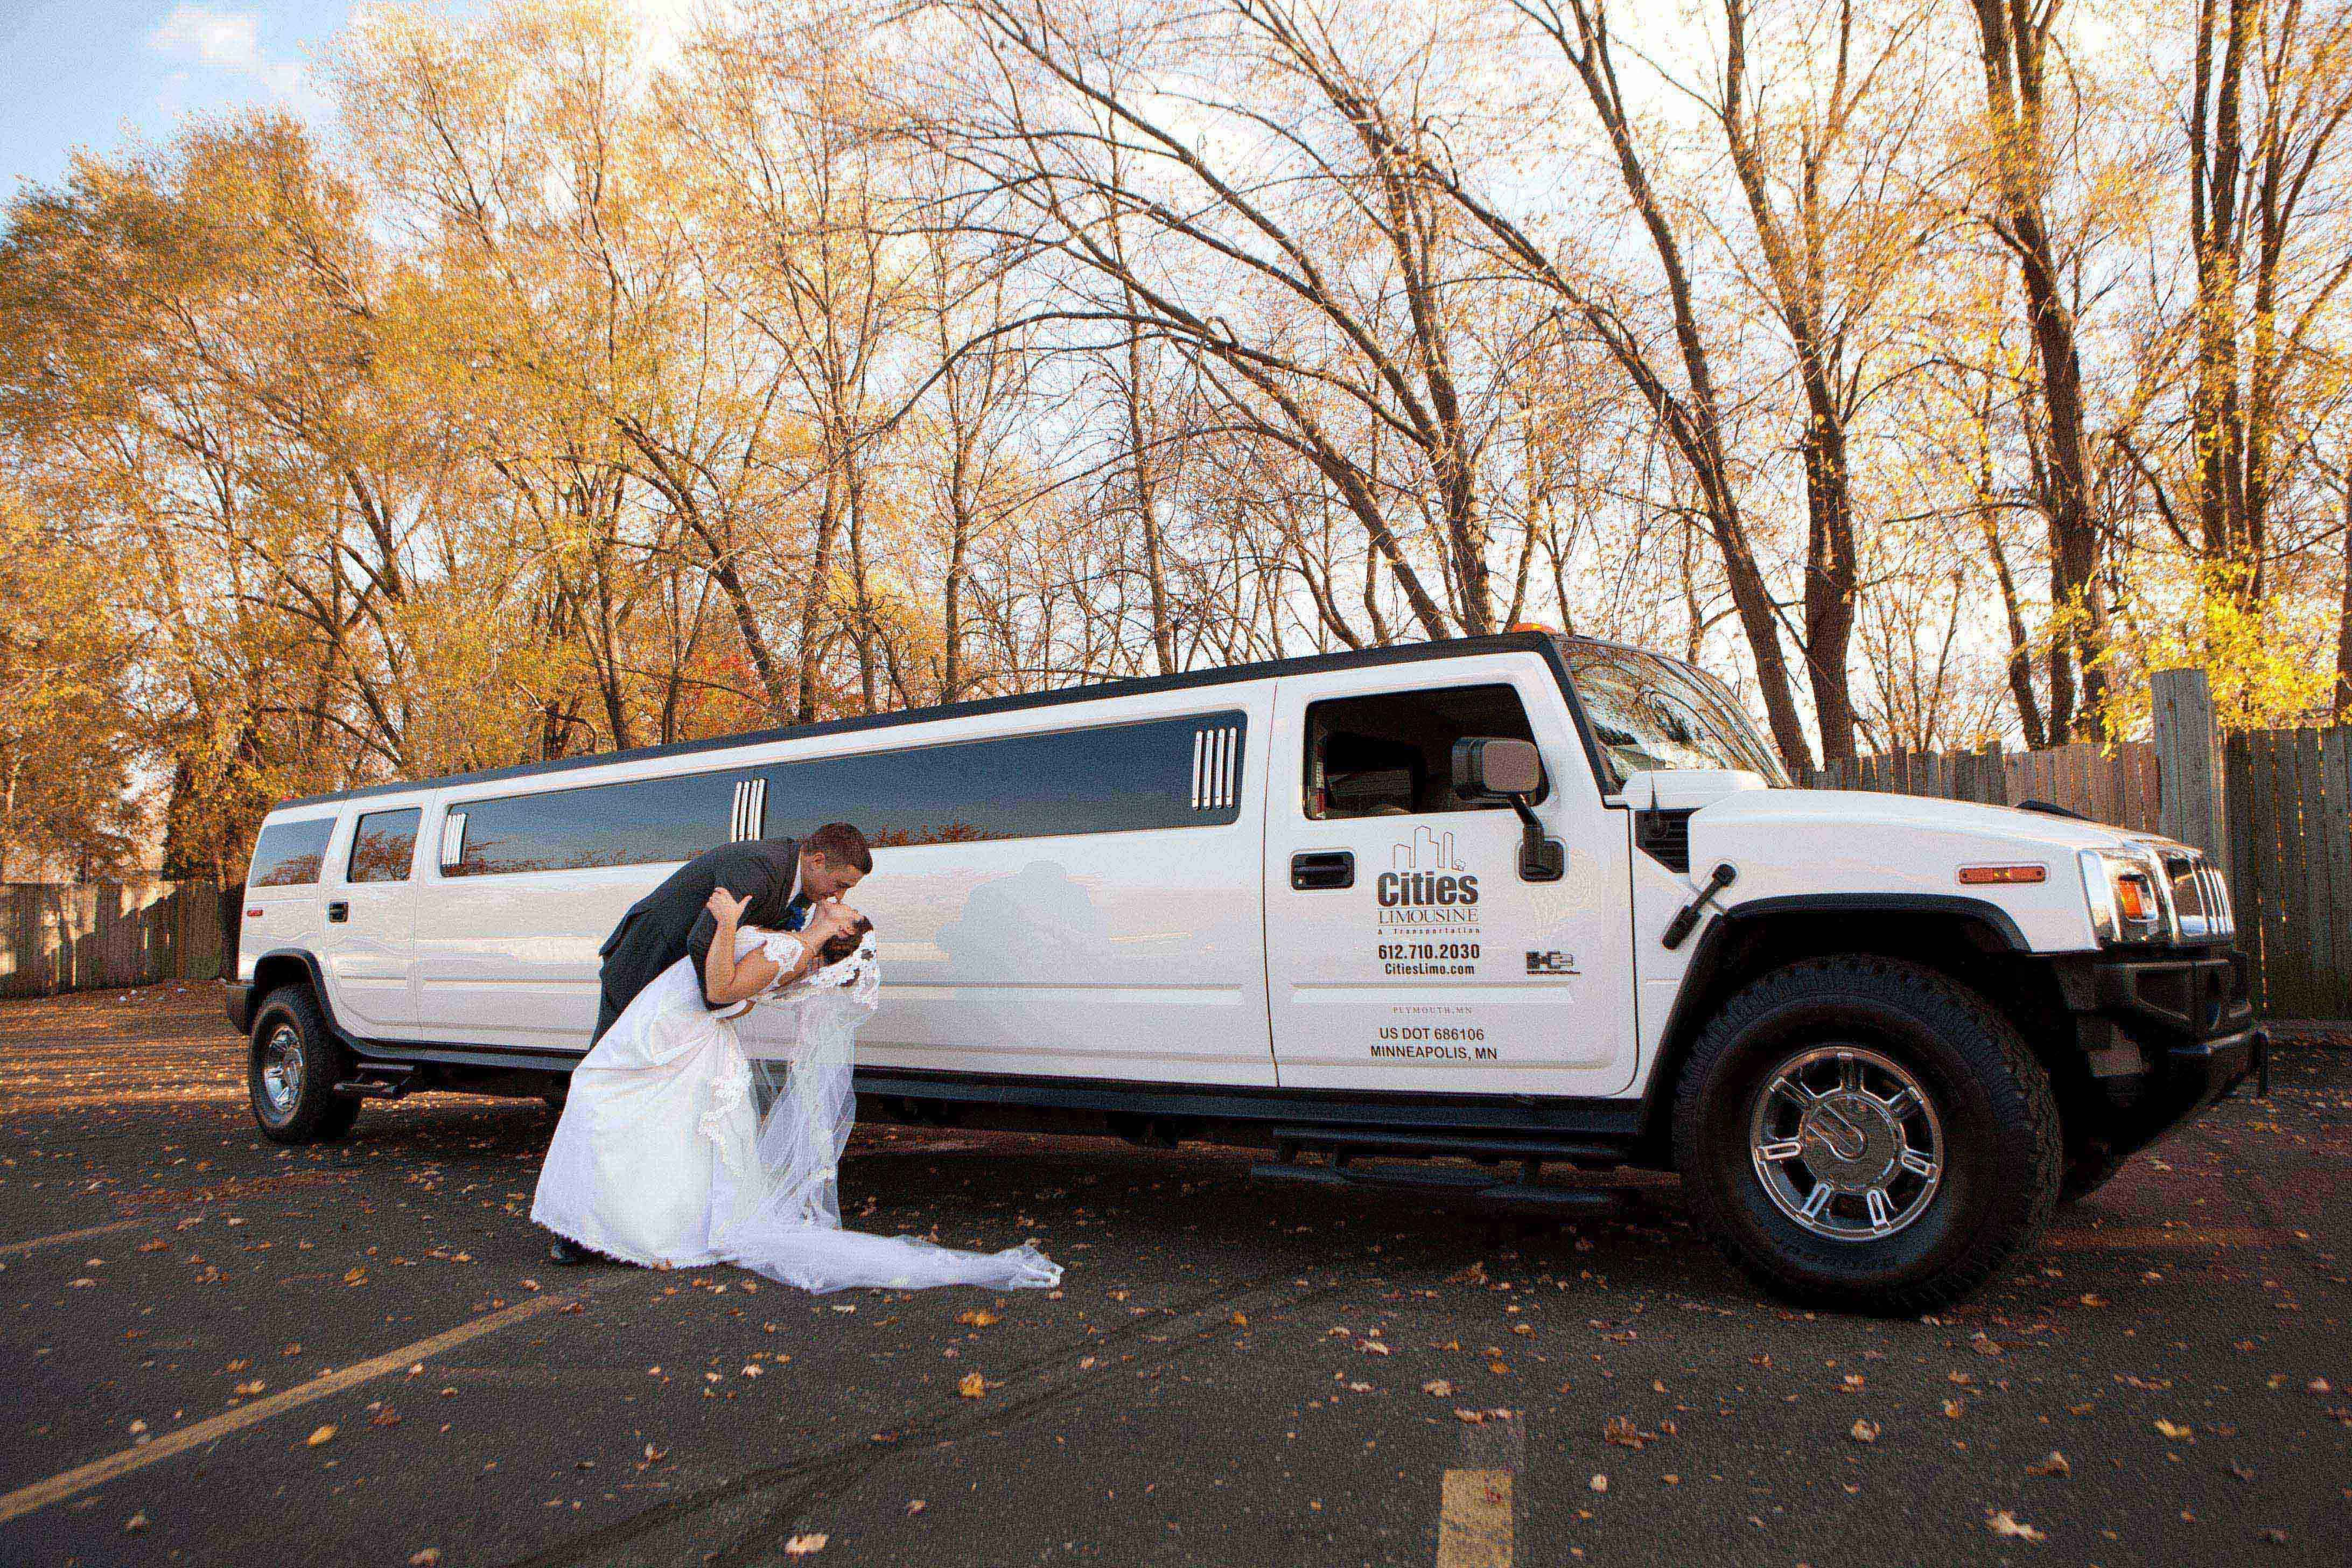 A romantic moment in front of the limo by Kim